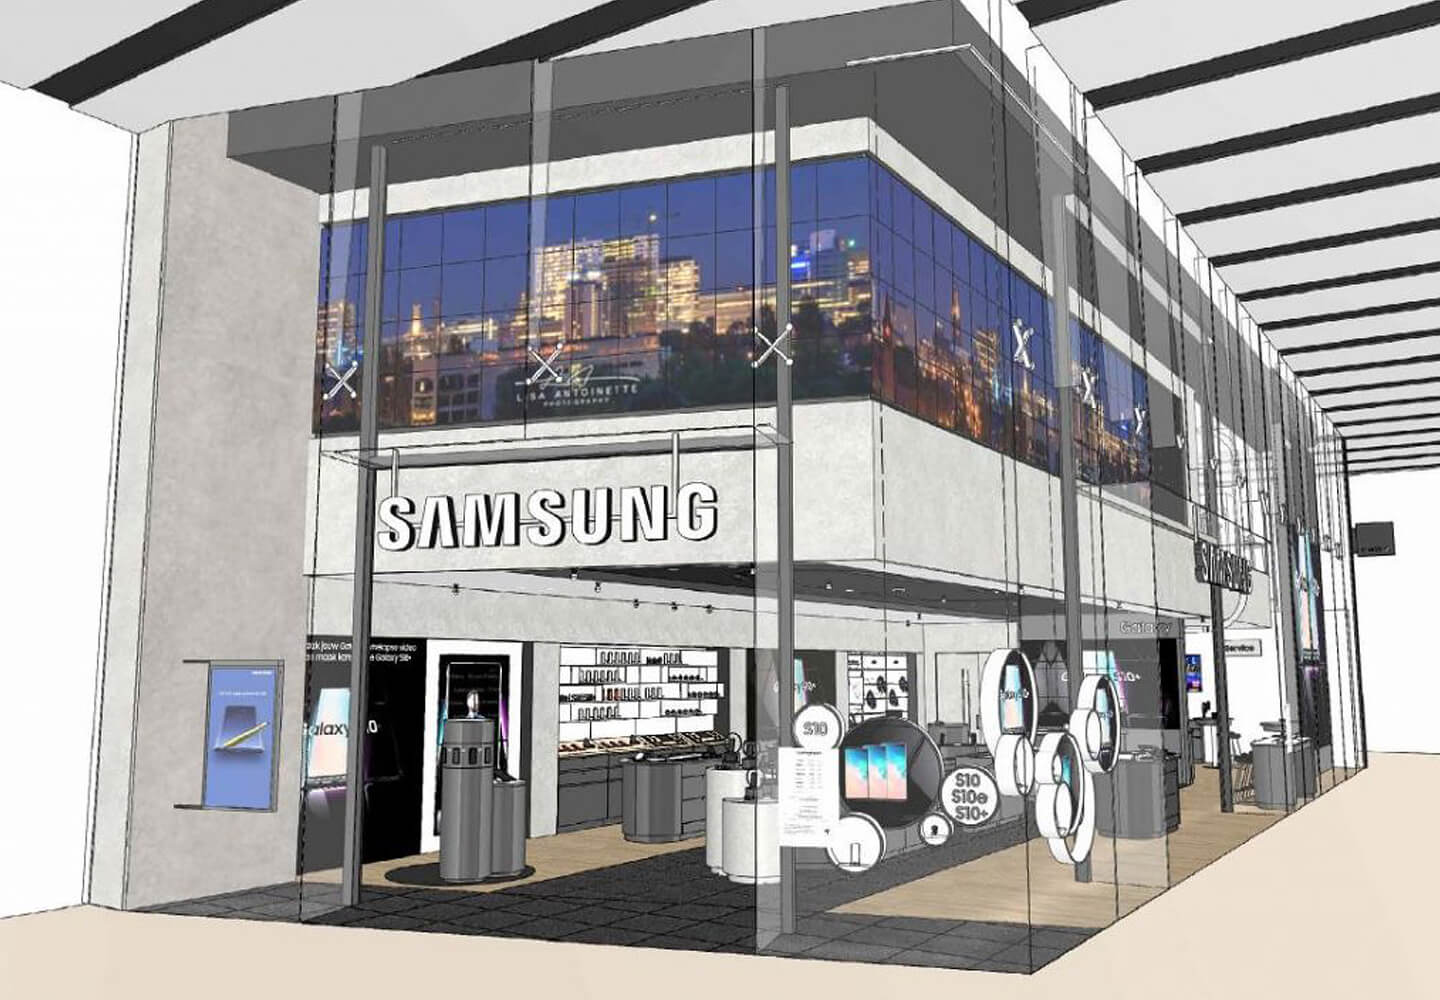 Samsung store The Netherlands